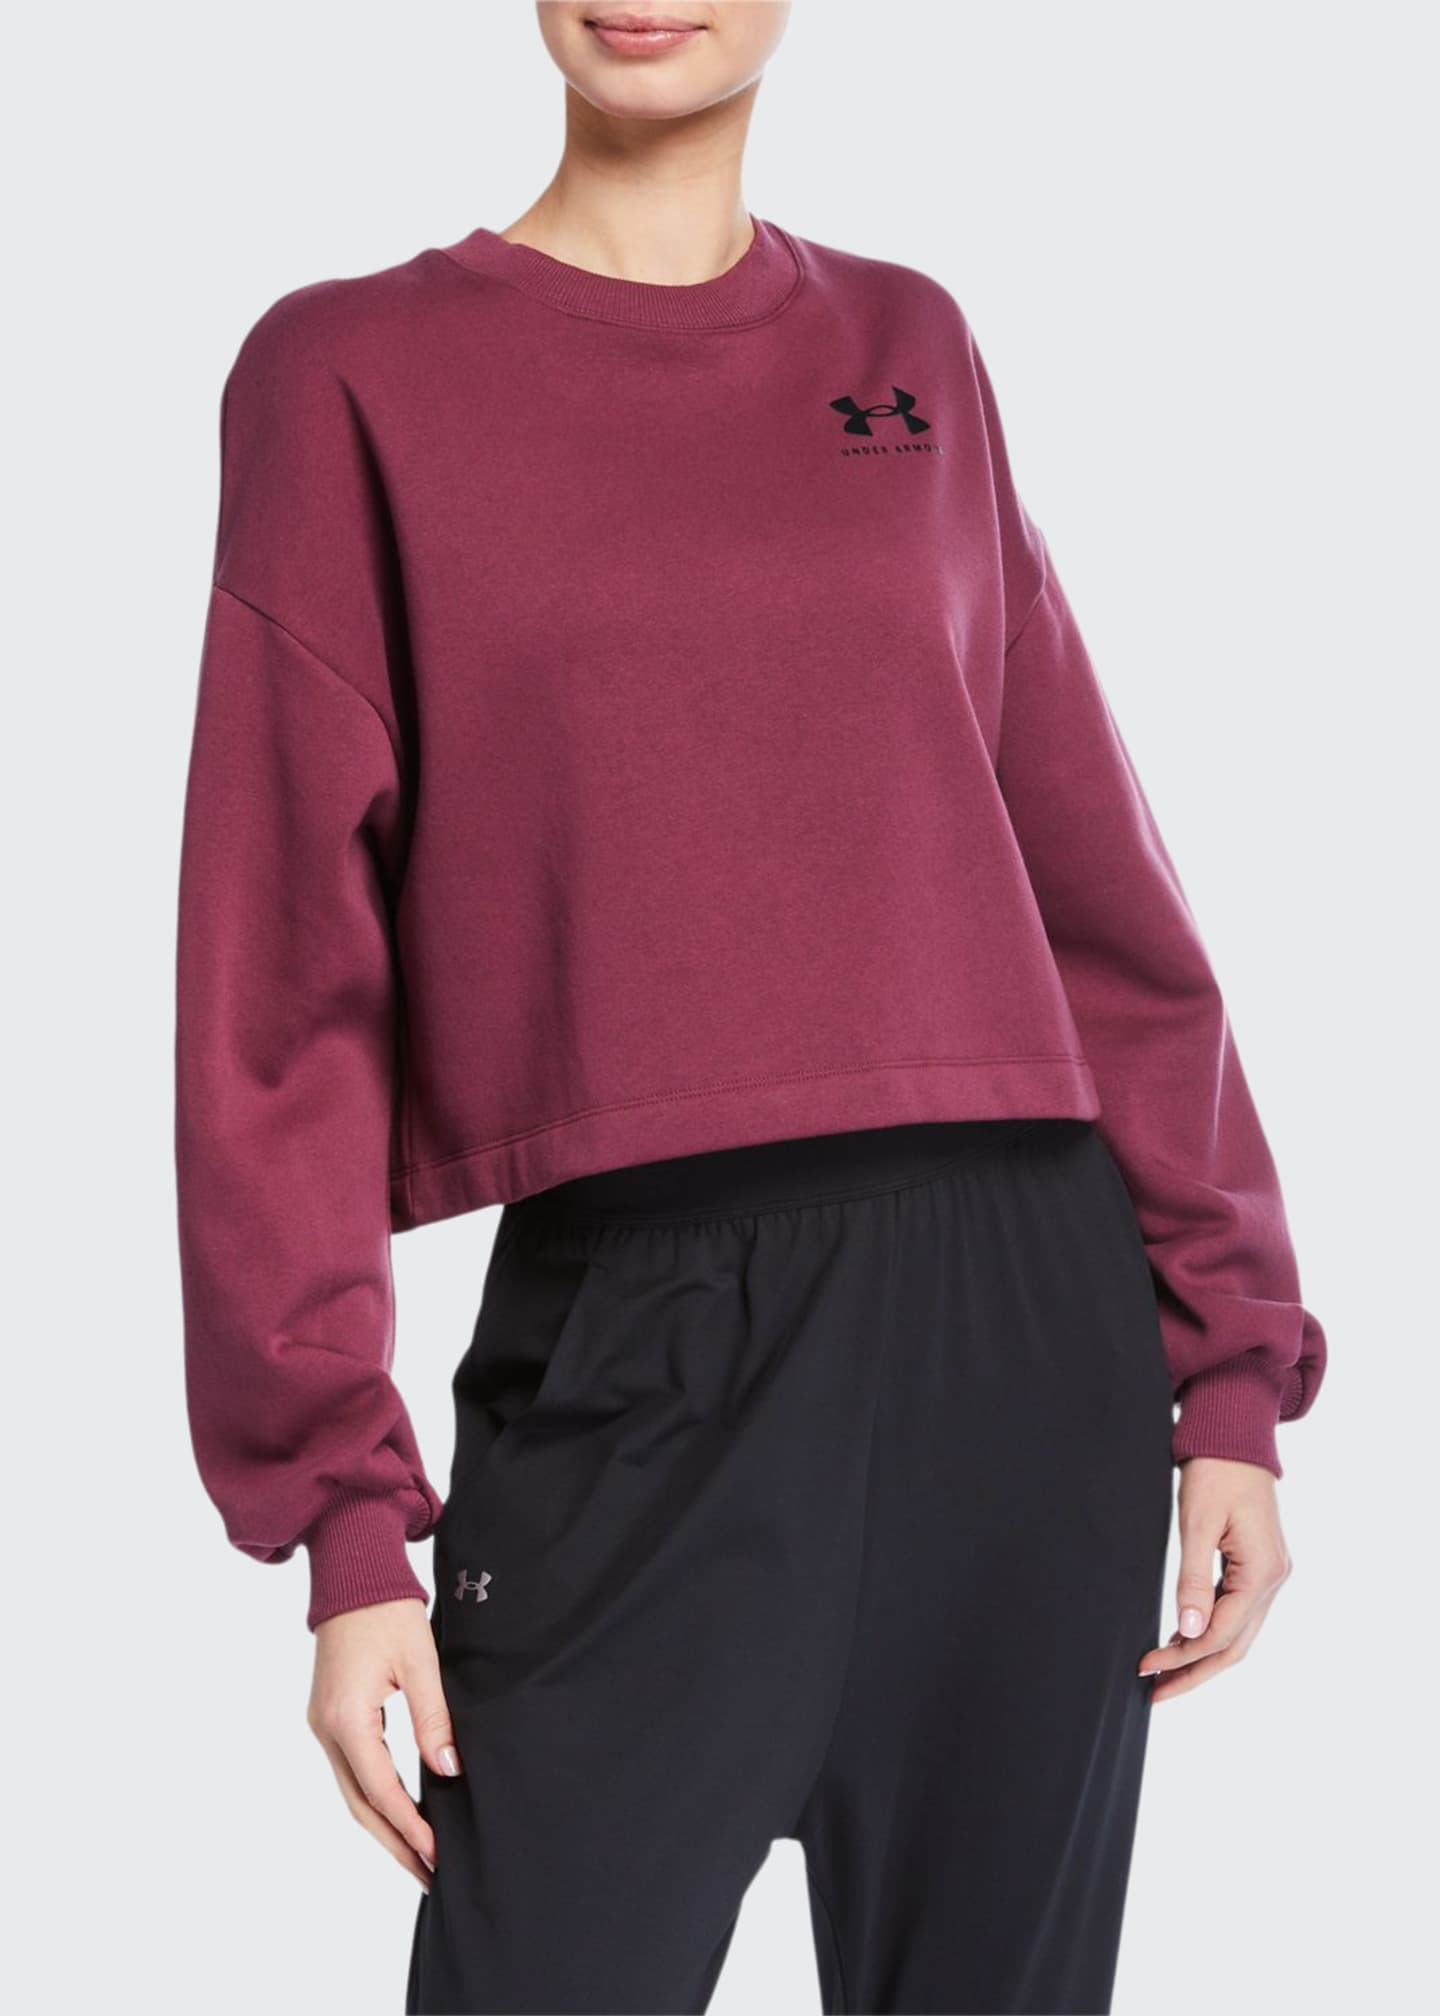 Under Armour Rival Fleece Graphic LC Crewneck Sweatshirt,